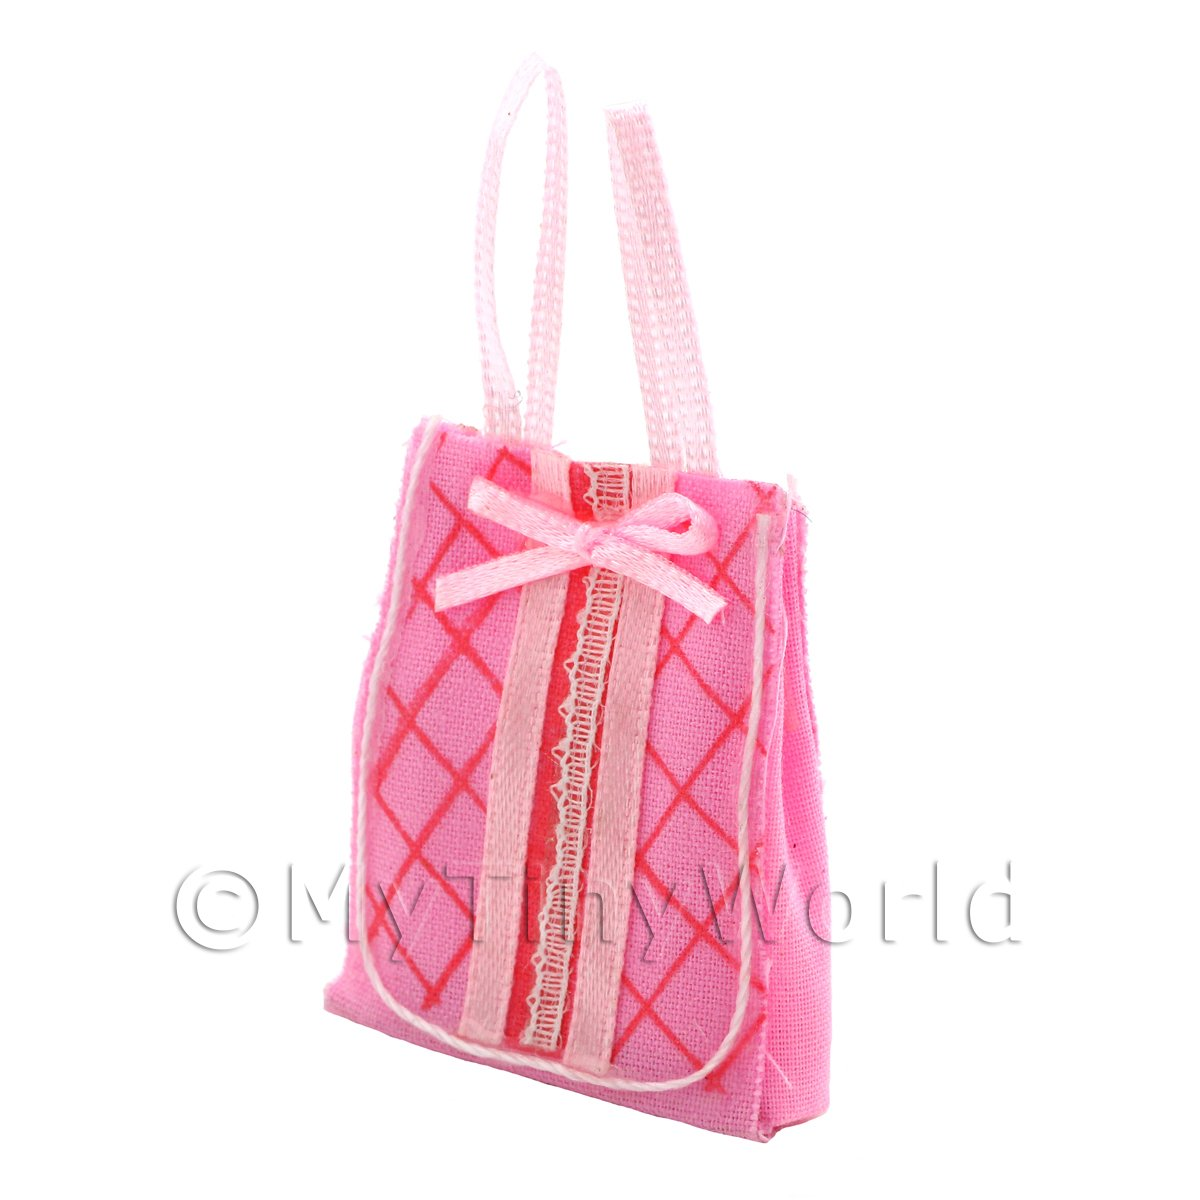 Dolls House Miniature Pink Fabric Shopping Bag